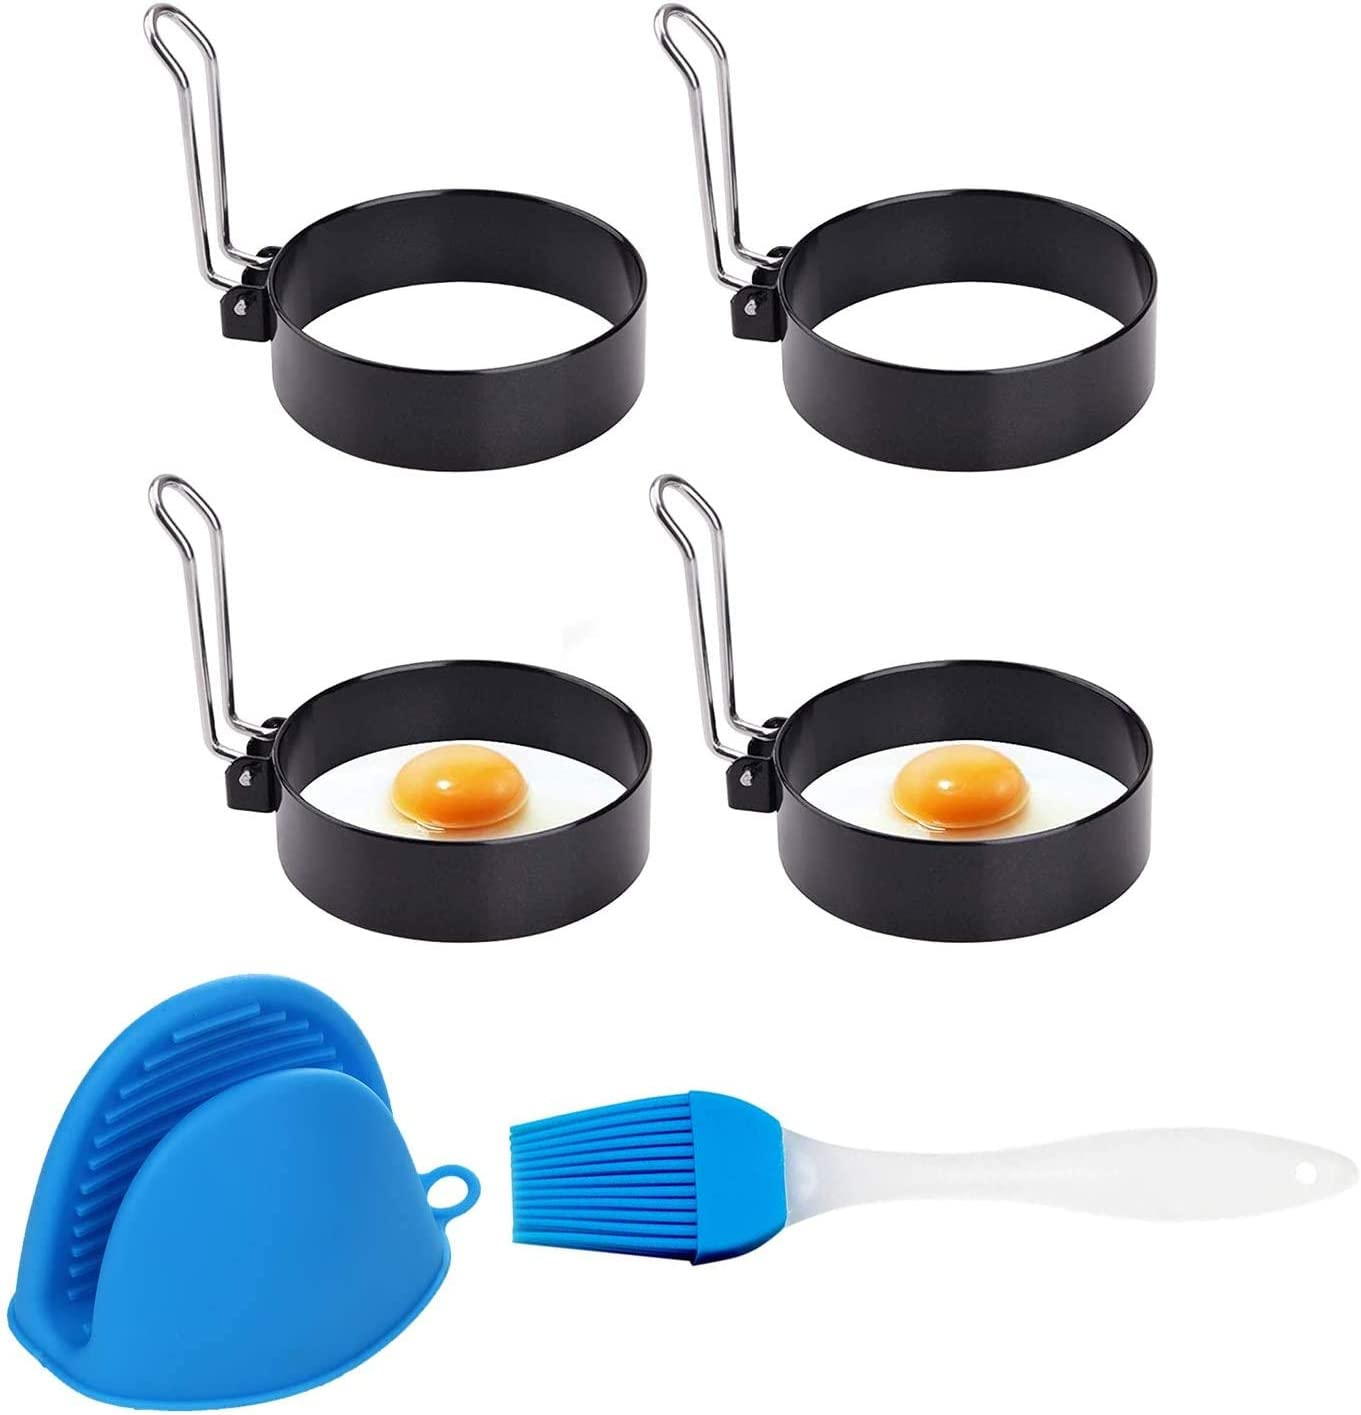 Seasonal Wrap Introduction Egg Ring Genuine Free Shipping 4 Pack Round Breakfast Household Mold Ro Tools Cooking